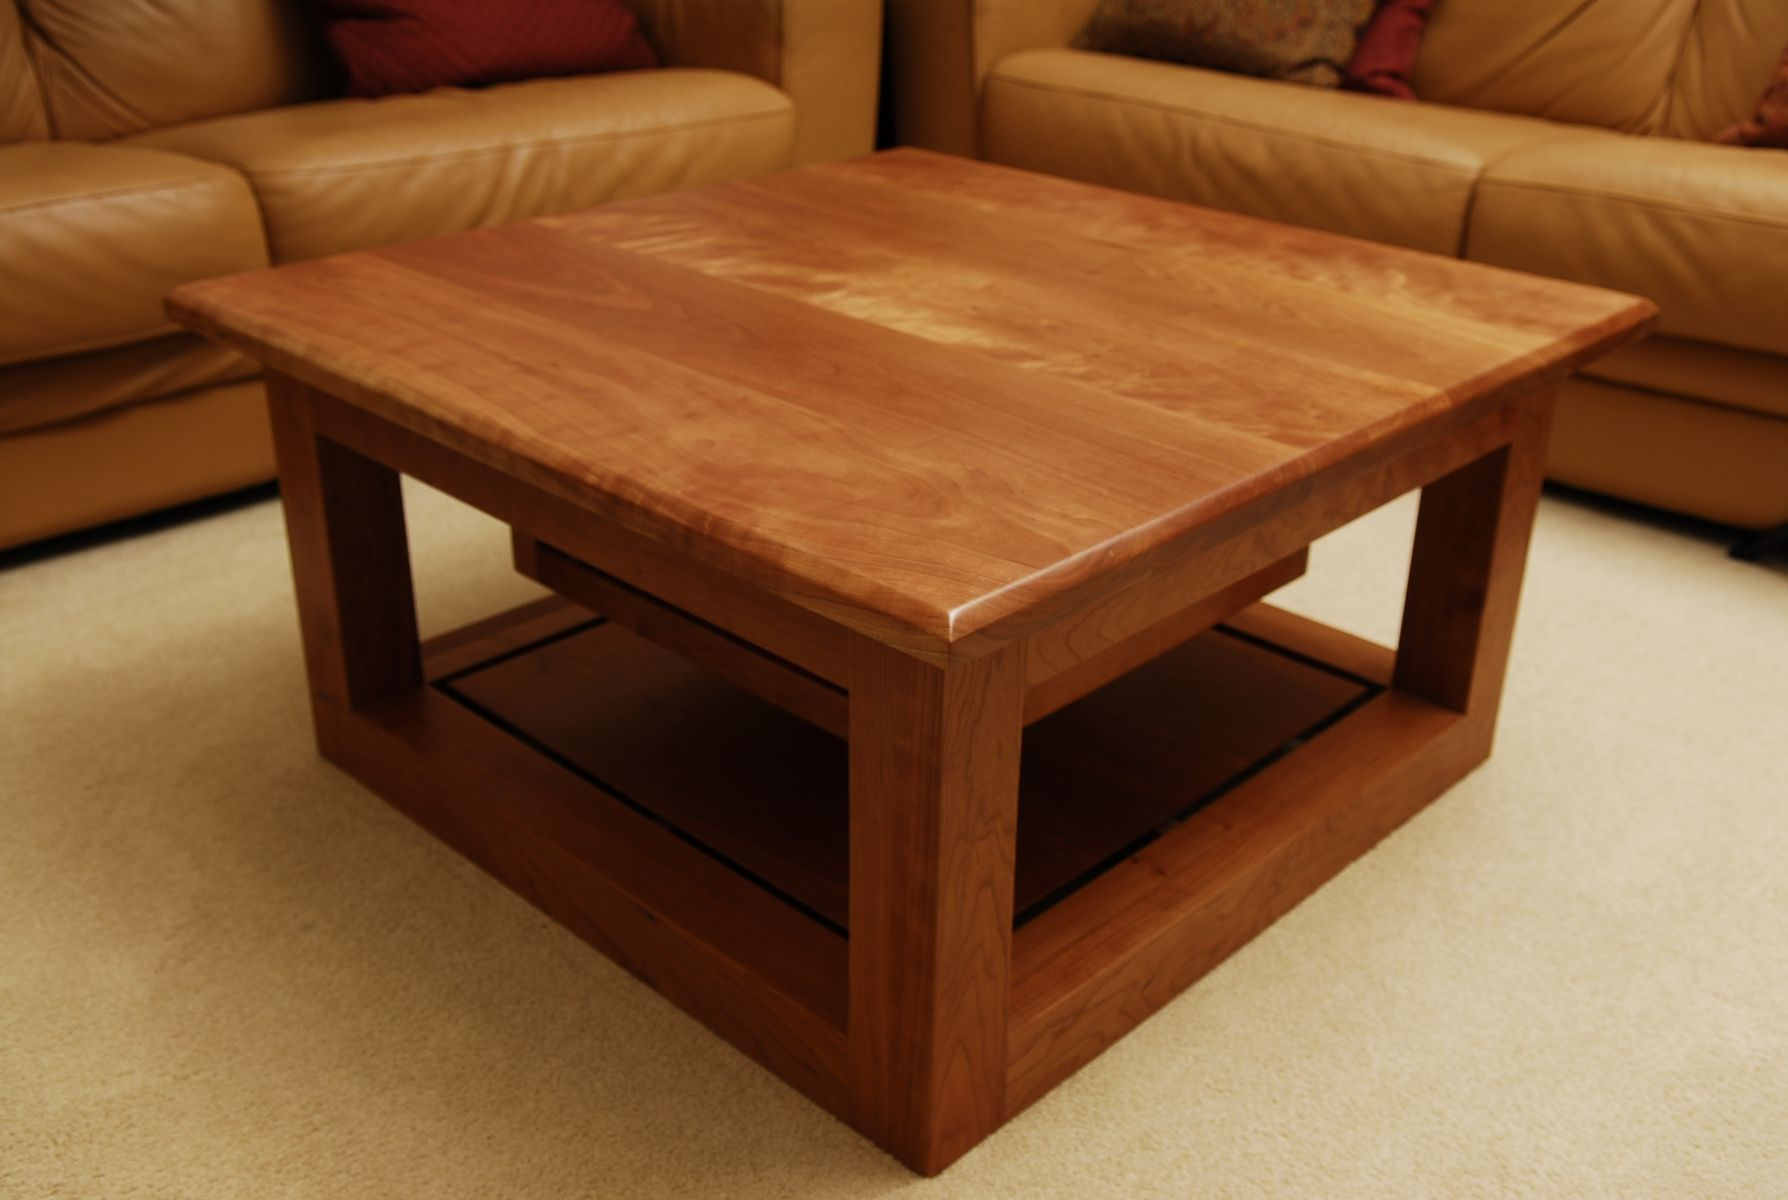 American Trails Mesa Natural Solid Cherry Top Coffee Table 604 28 Round Coffee Table Modern Round Coffee Table Cherry Wood Coffee Table